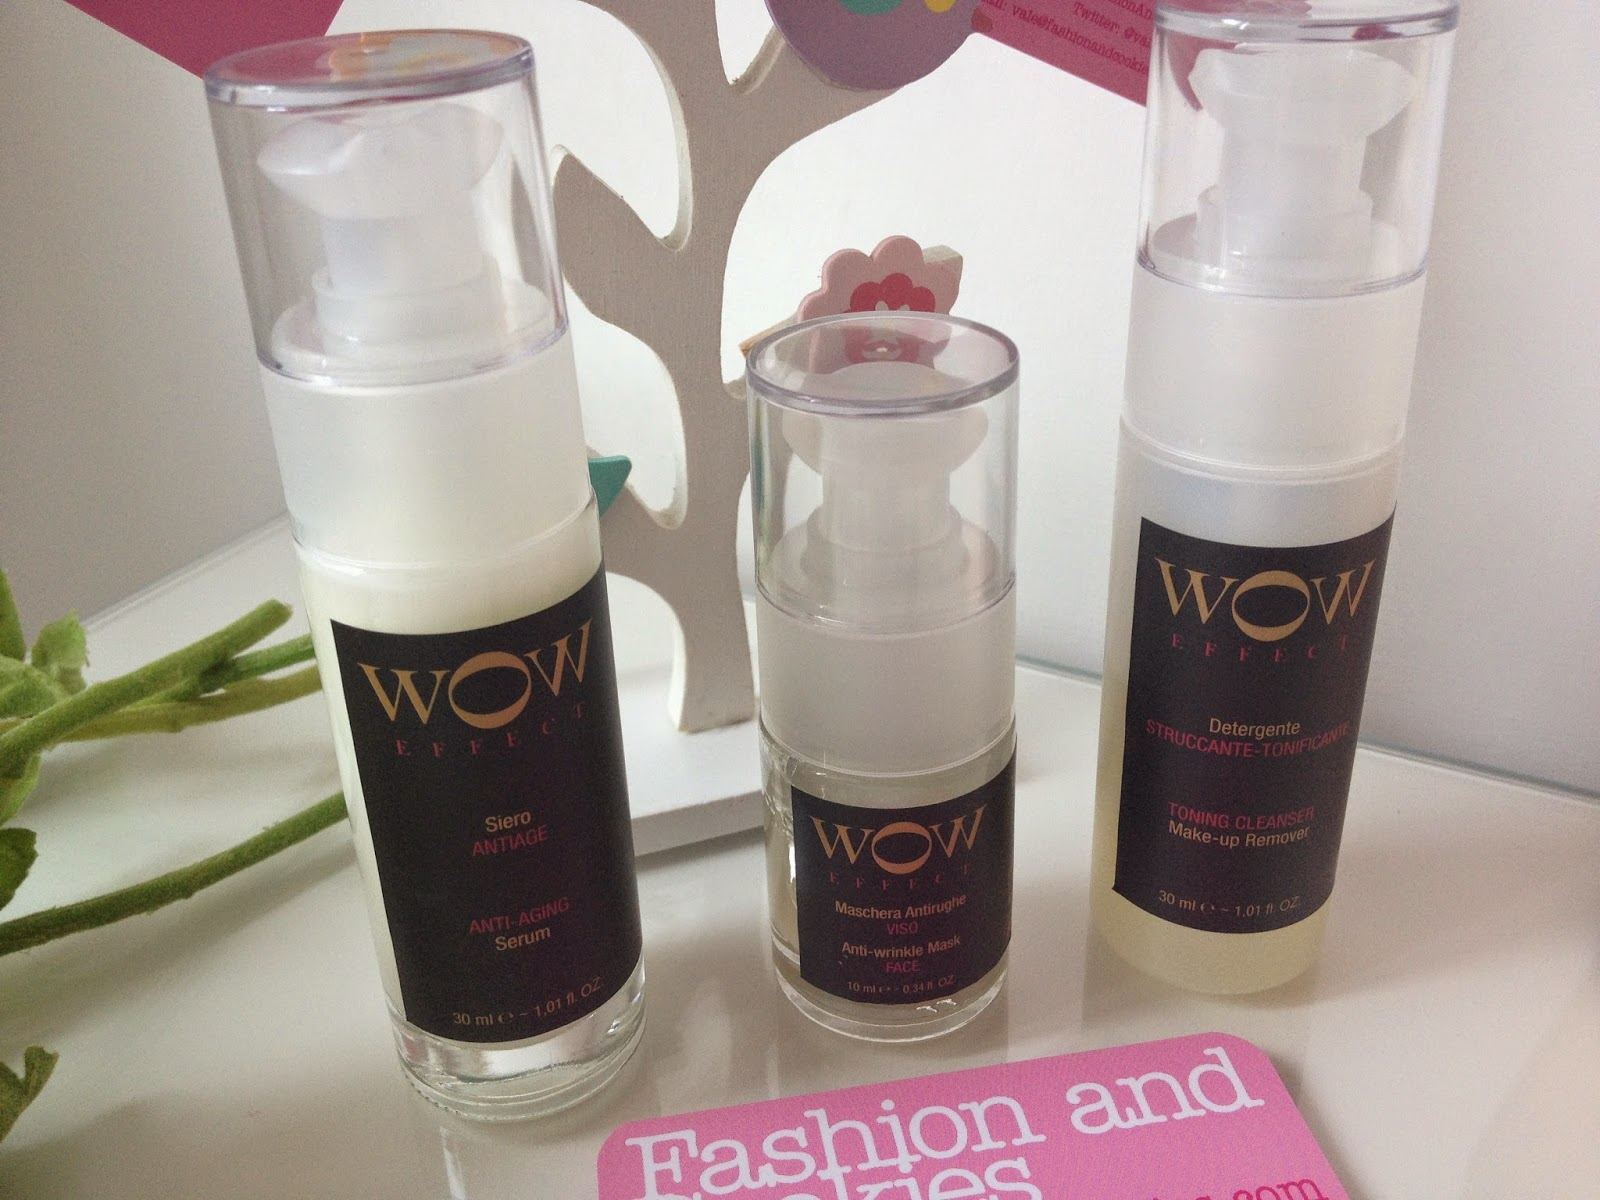 wow effect review, Fashion and Cookies, fashion blogger